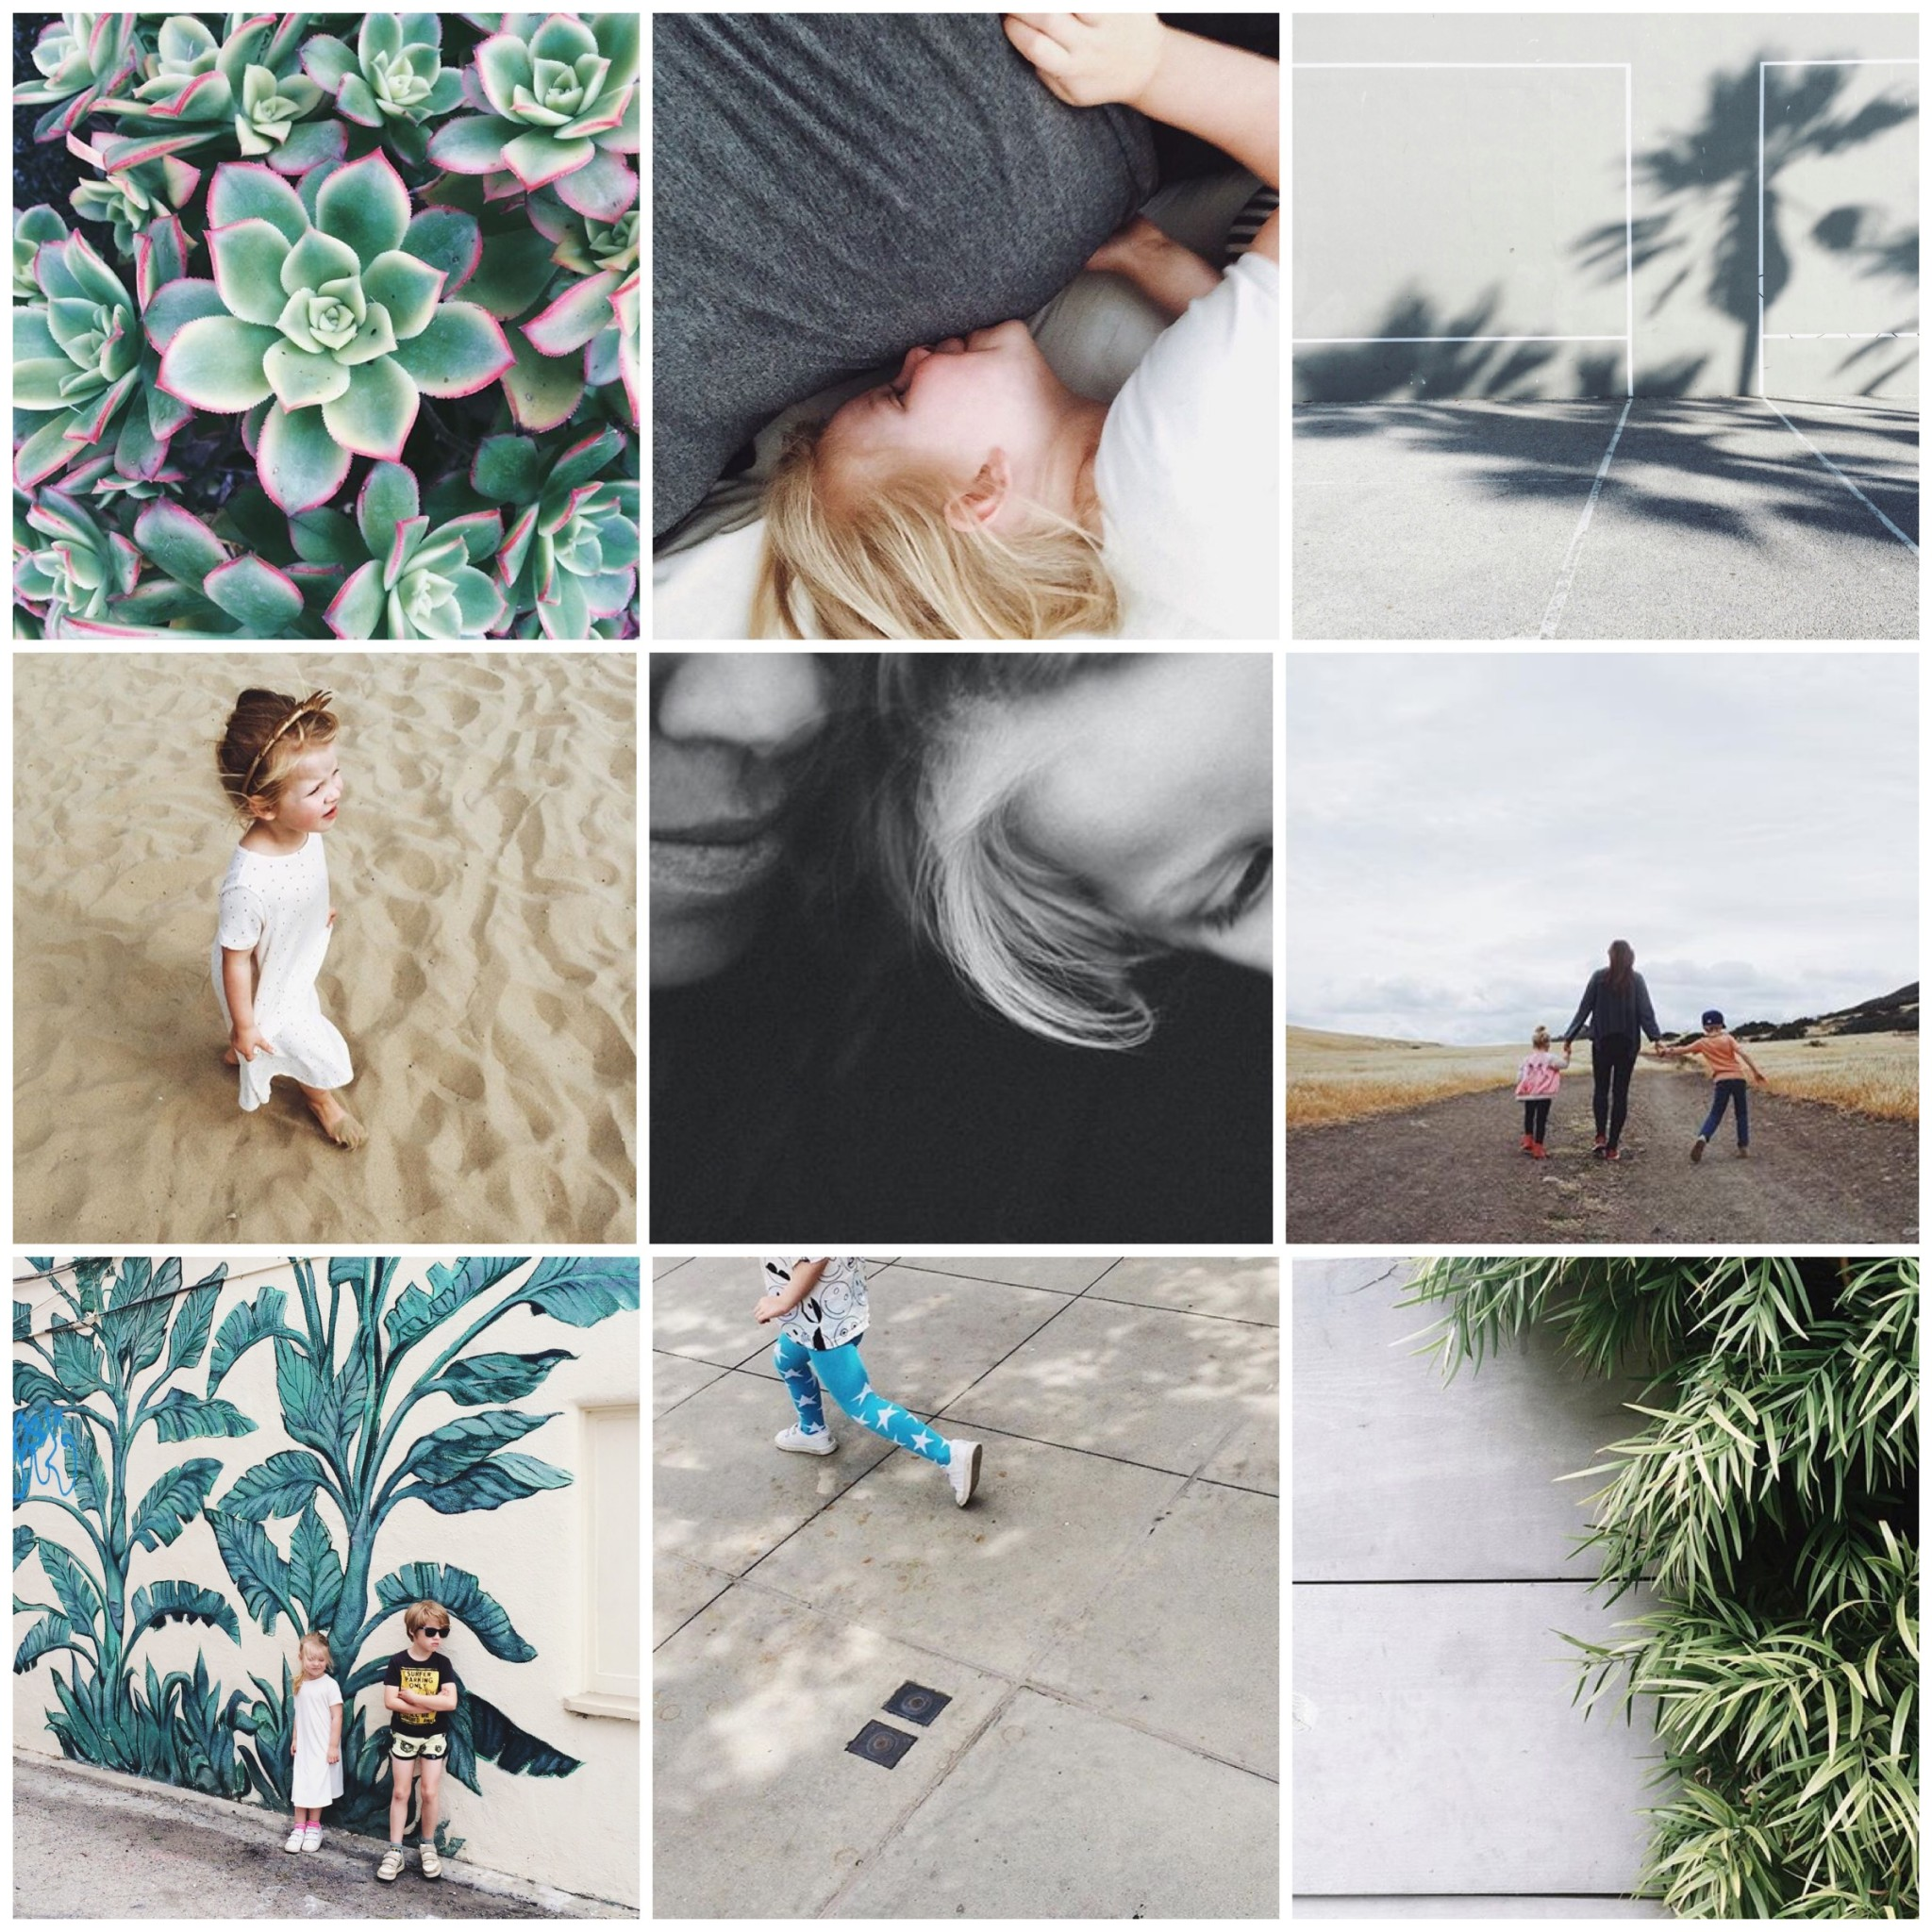 May on Instagram @madebylon